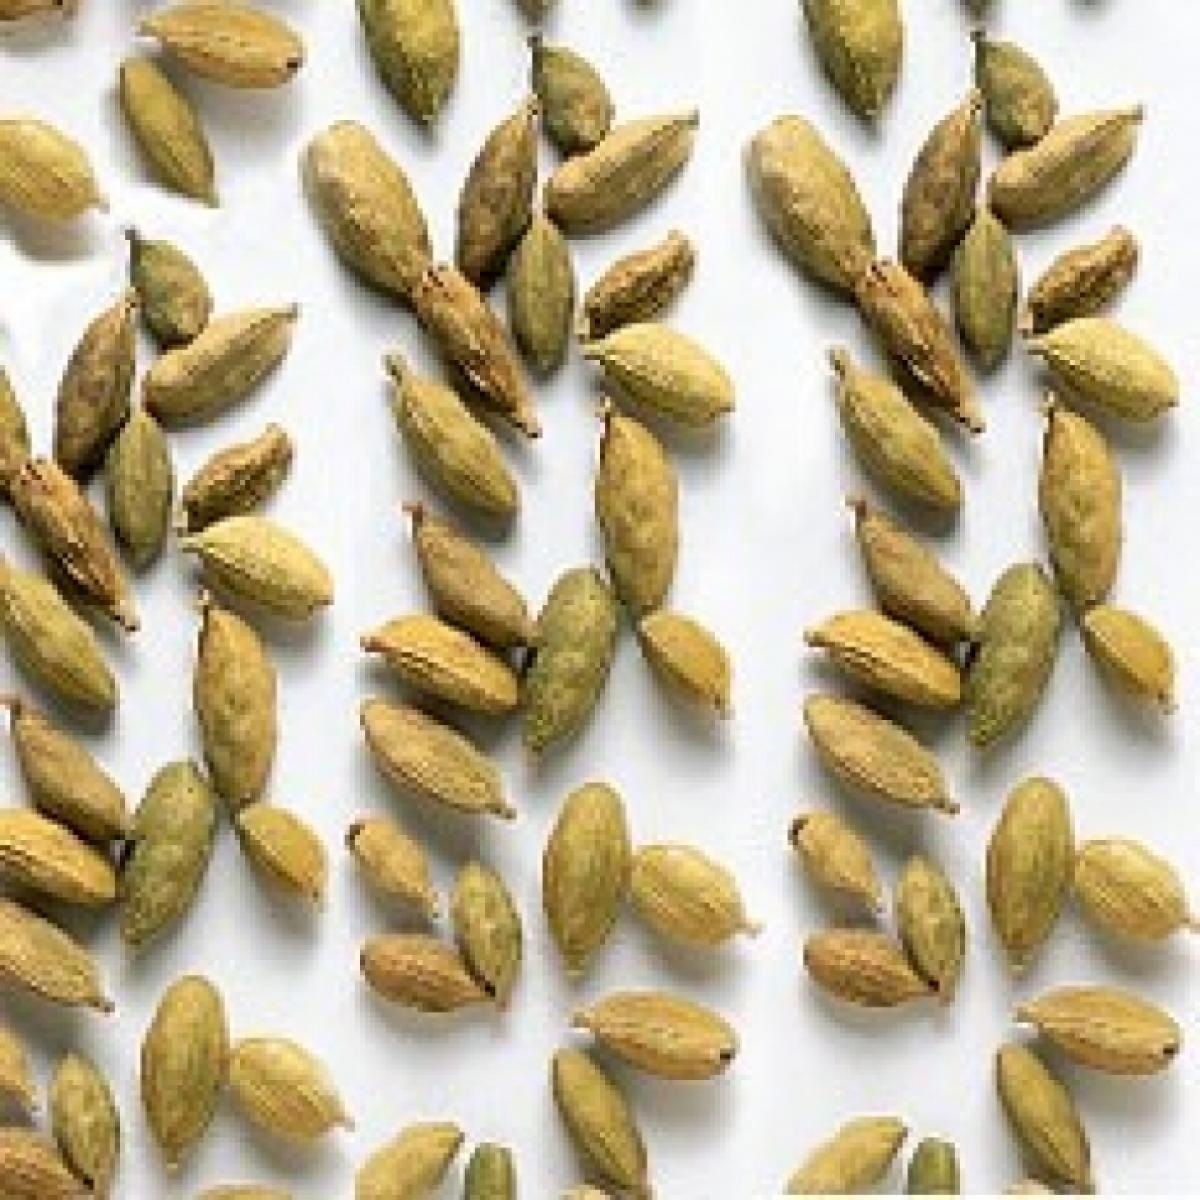 Ingredient cardamom pods old image keep